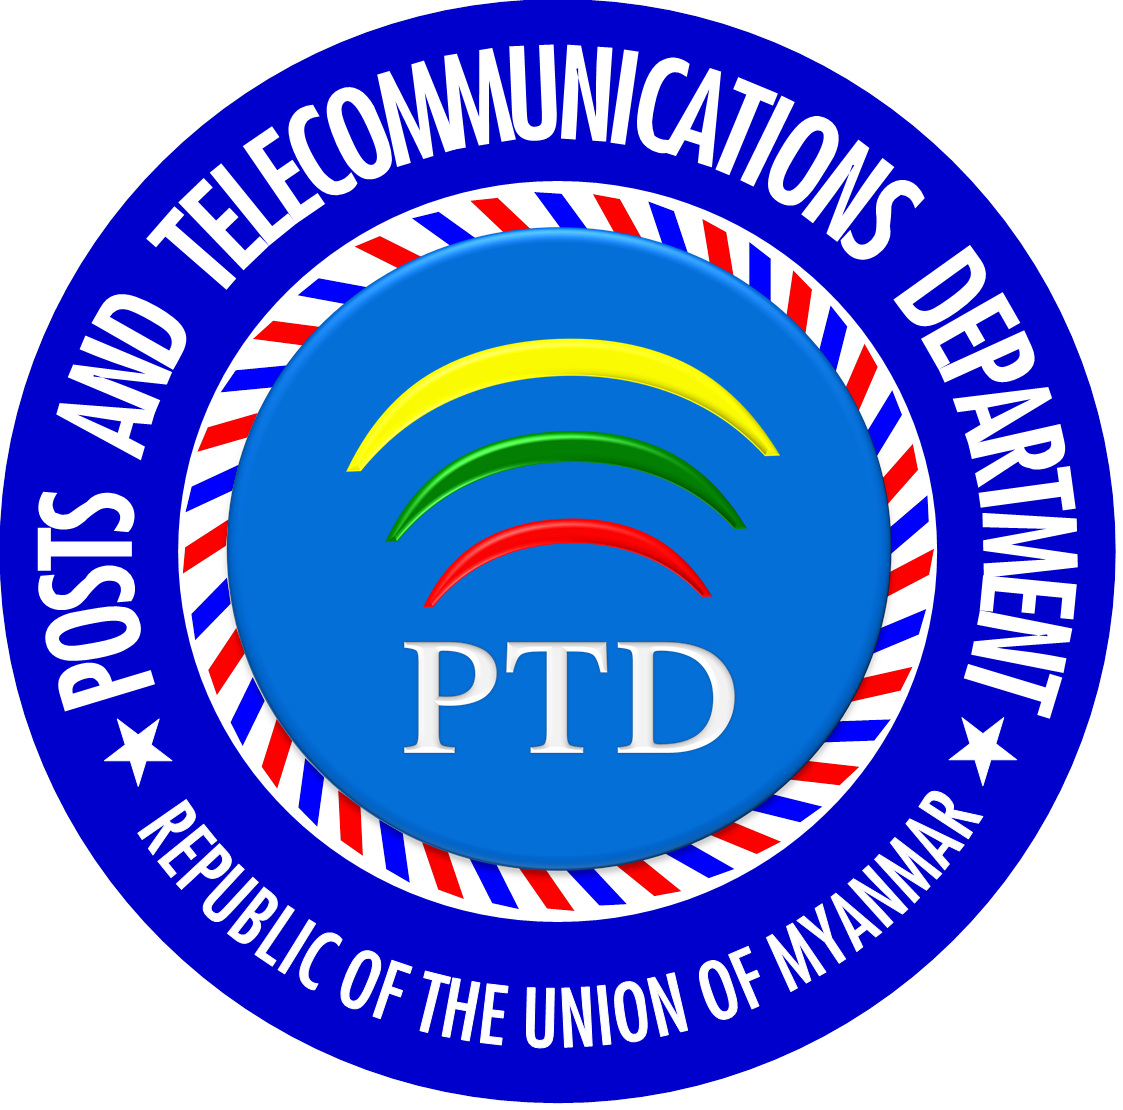 PTD (Post and Telecommunications Department)